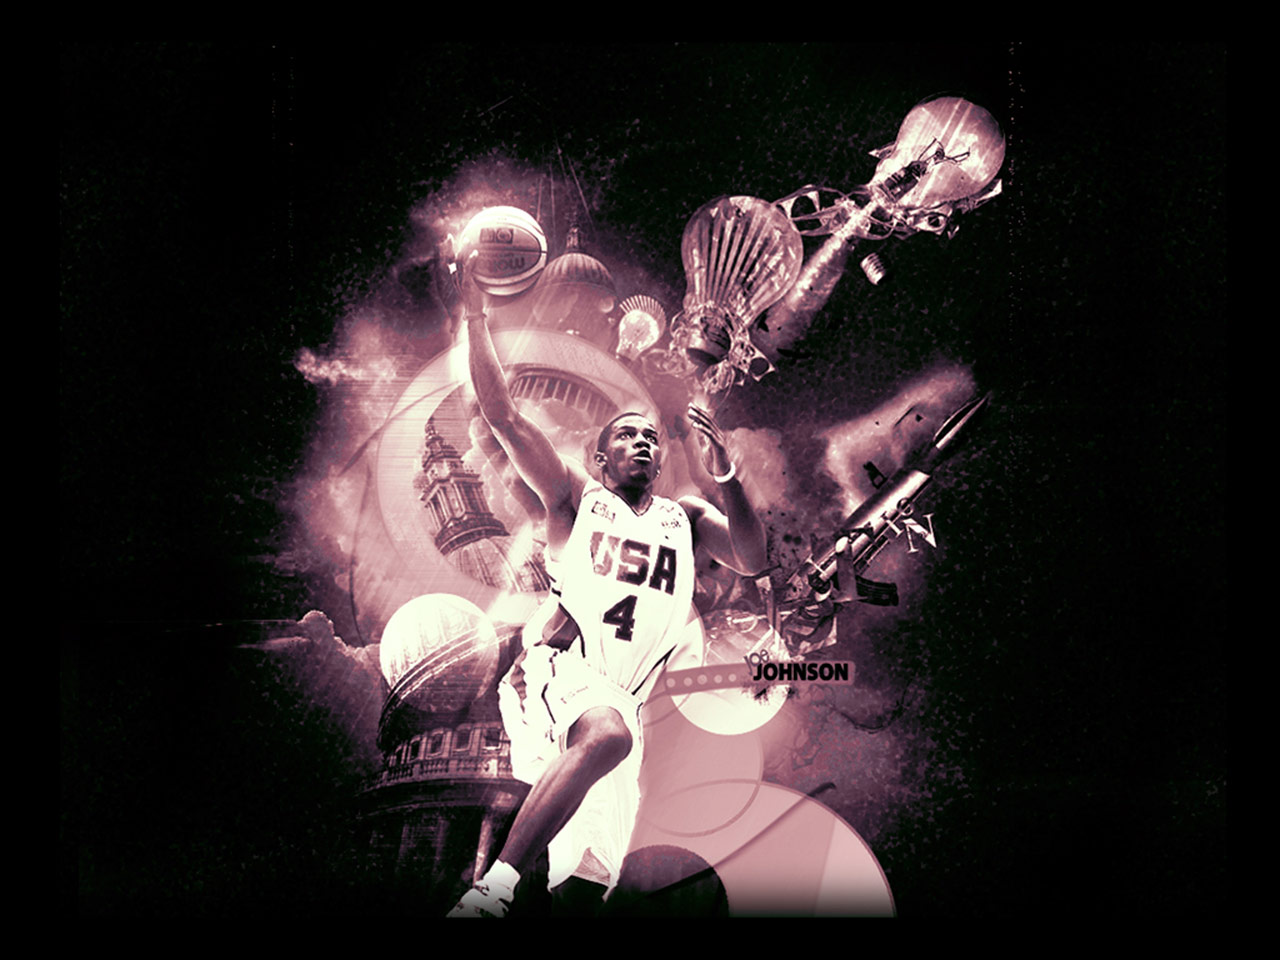 Joe Johnson Dream Team Dunk Wallpaper Basketball 1280x960